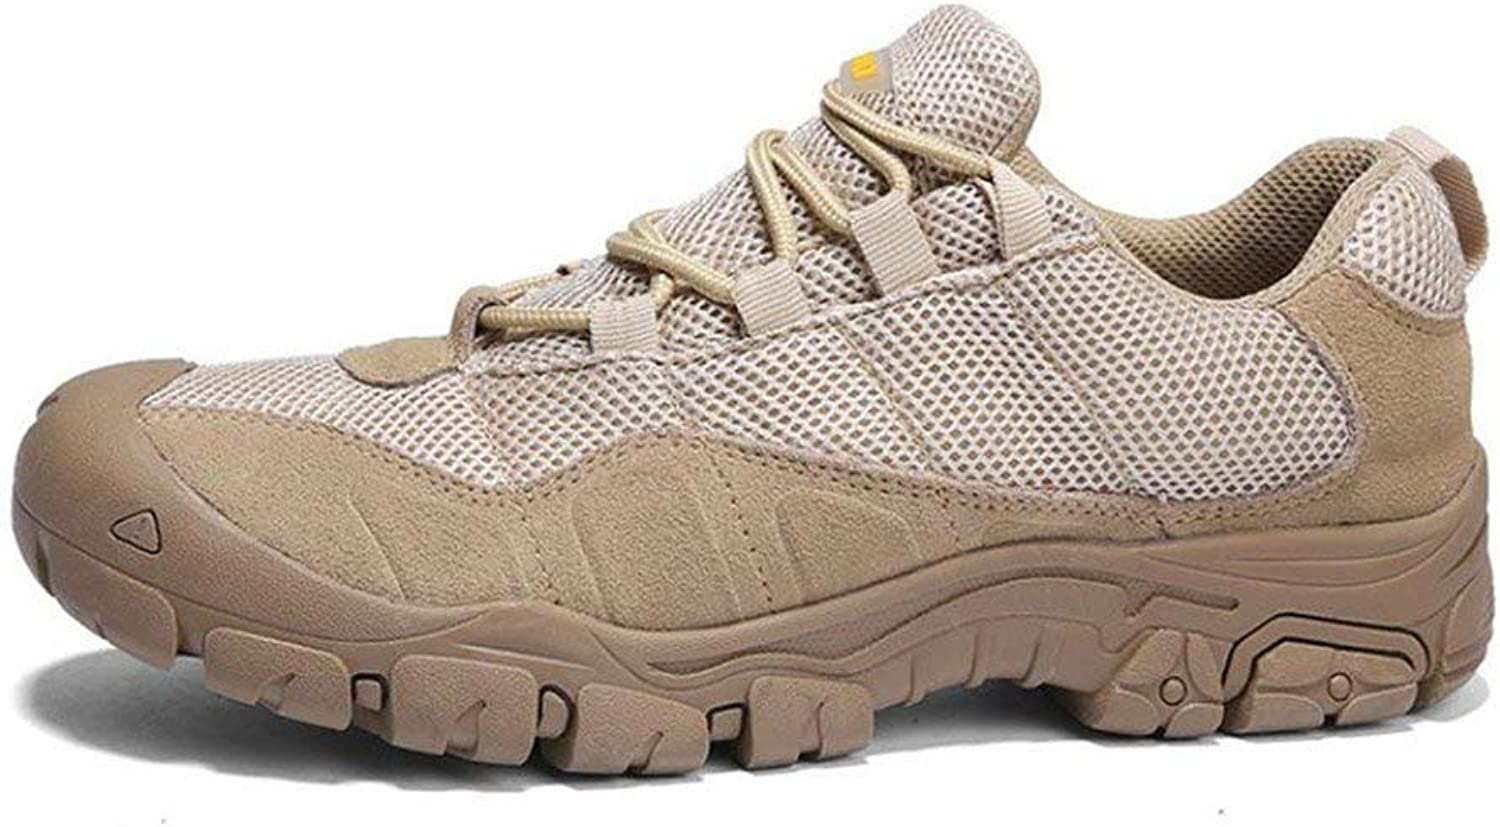 Sneakers, Hiking, Mesh shoes, Outdoor Quick Drying Upstream shoes, Sports and Leisure Men's shoes, Breathable Men's Abrasion Resistant Camp shoes (color  B, Size  41) (color   On, Size   42)